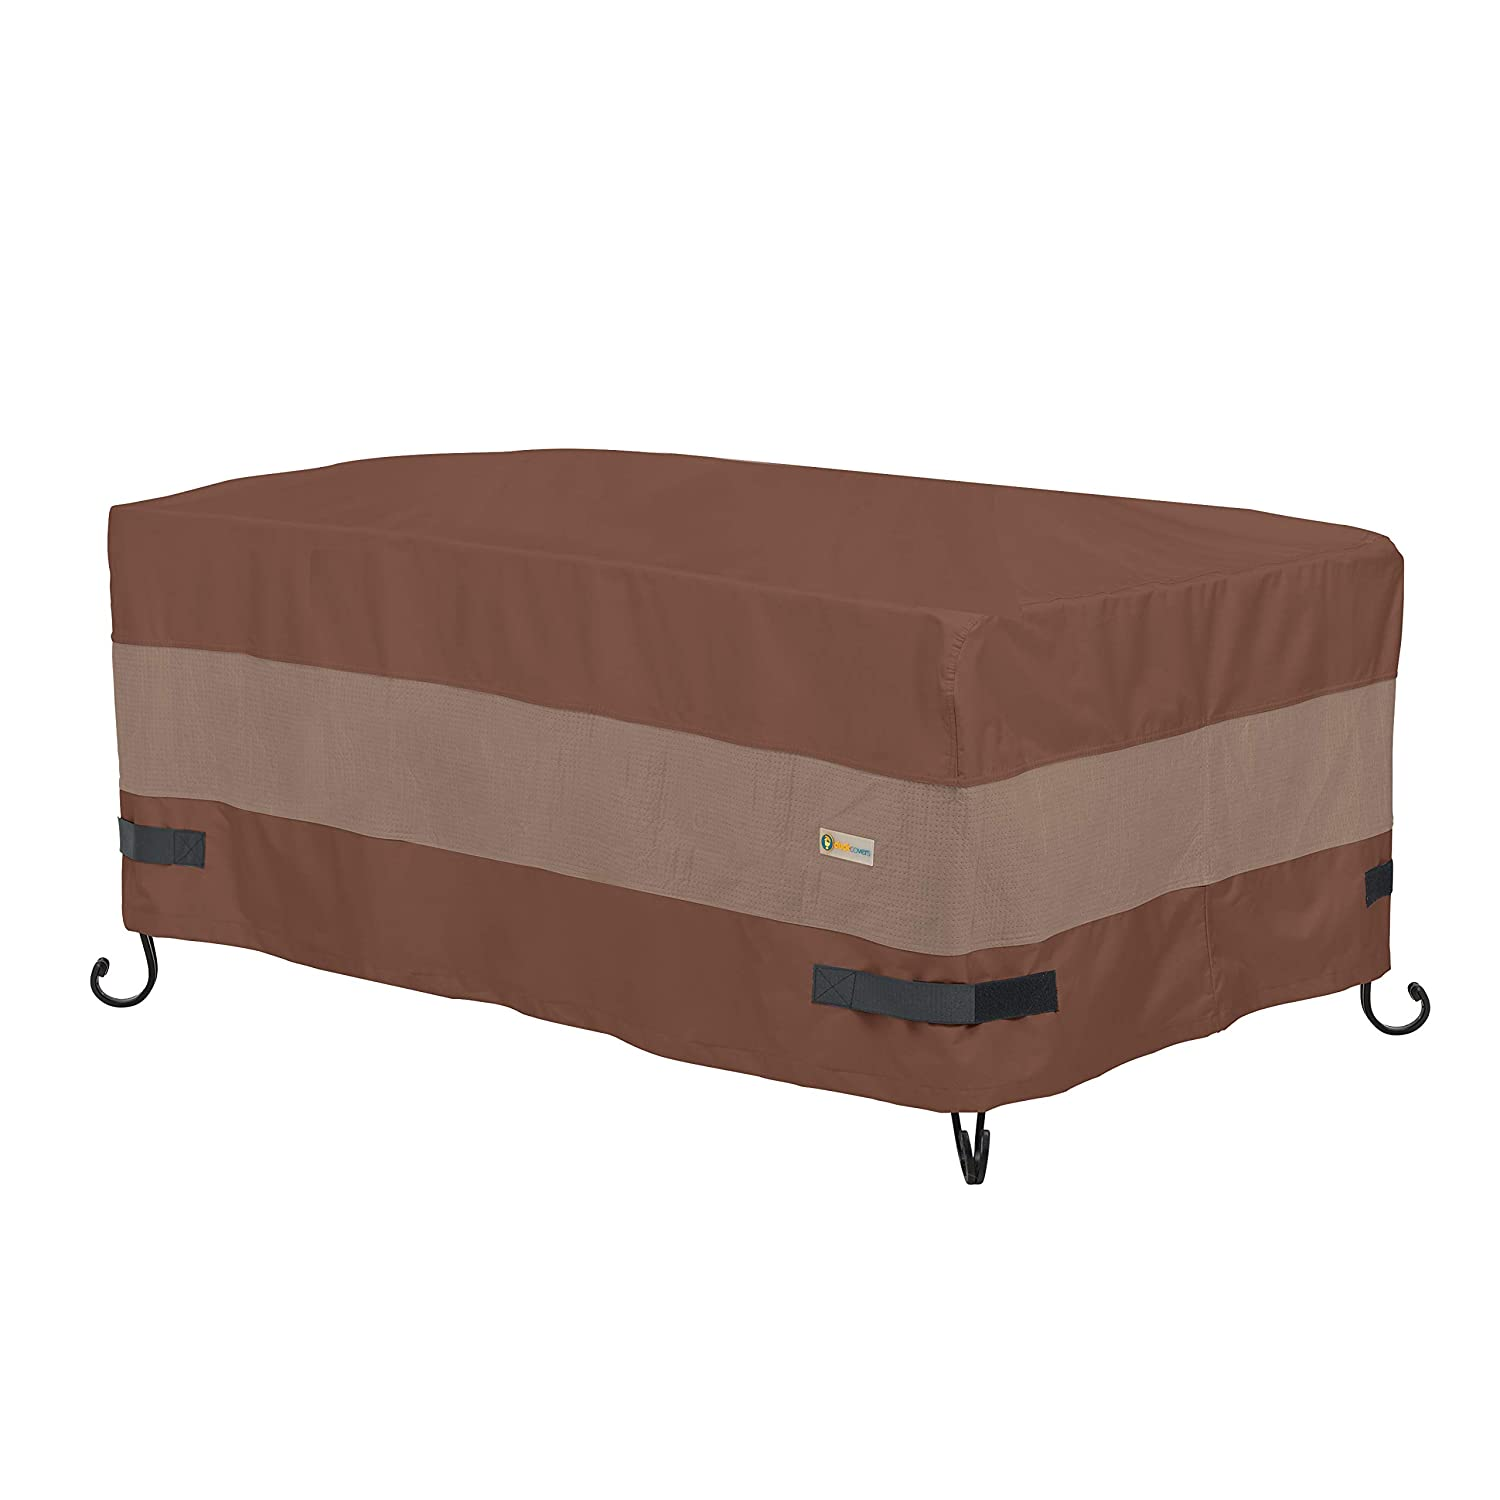 """Duck Covers Ultimate Rectangular Fire Pit Cover, 56"""" L x 38"""" W x 24"""" H"""